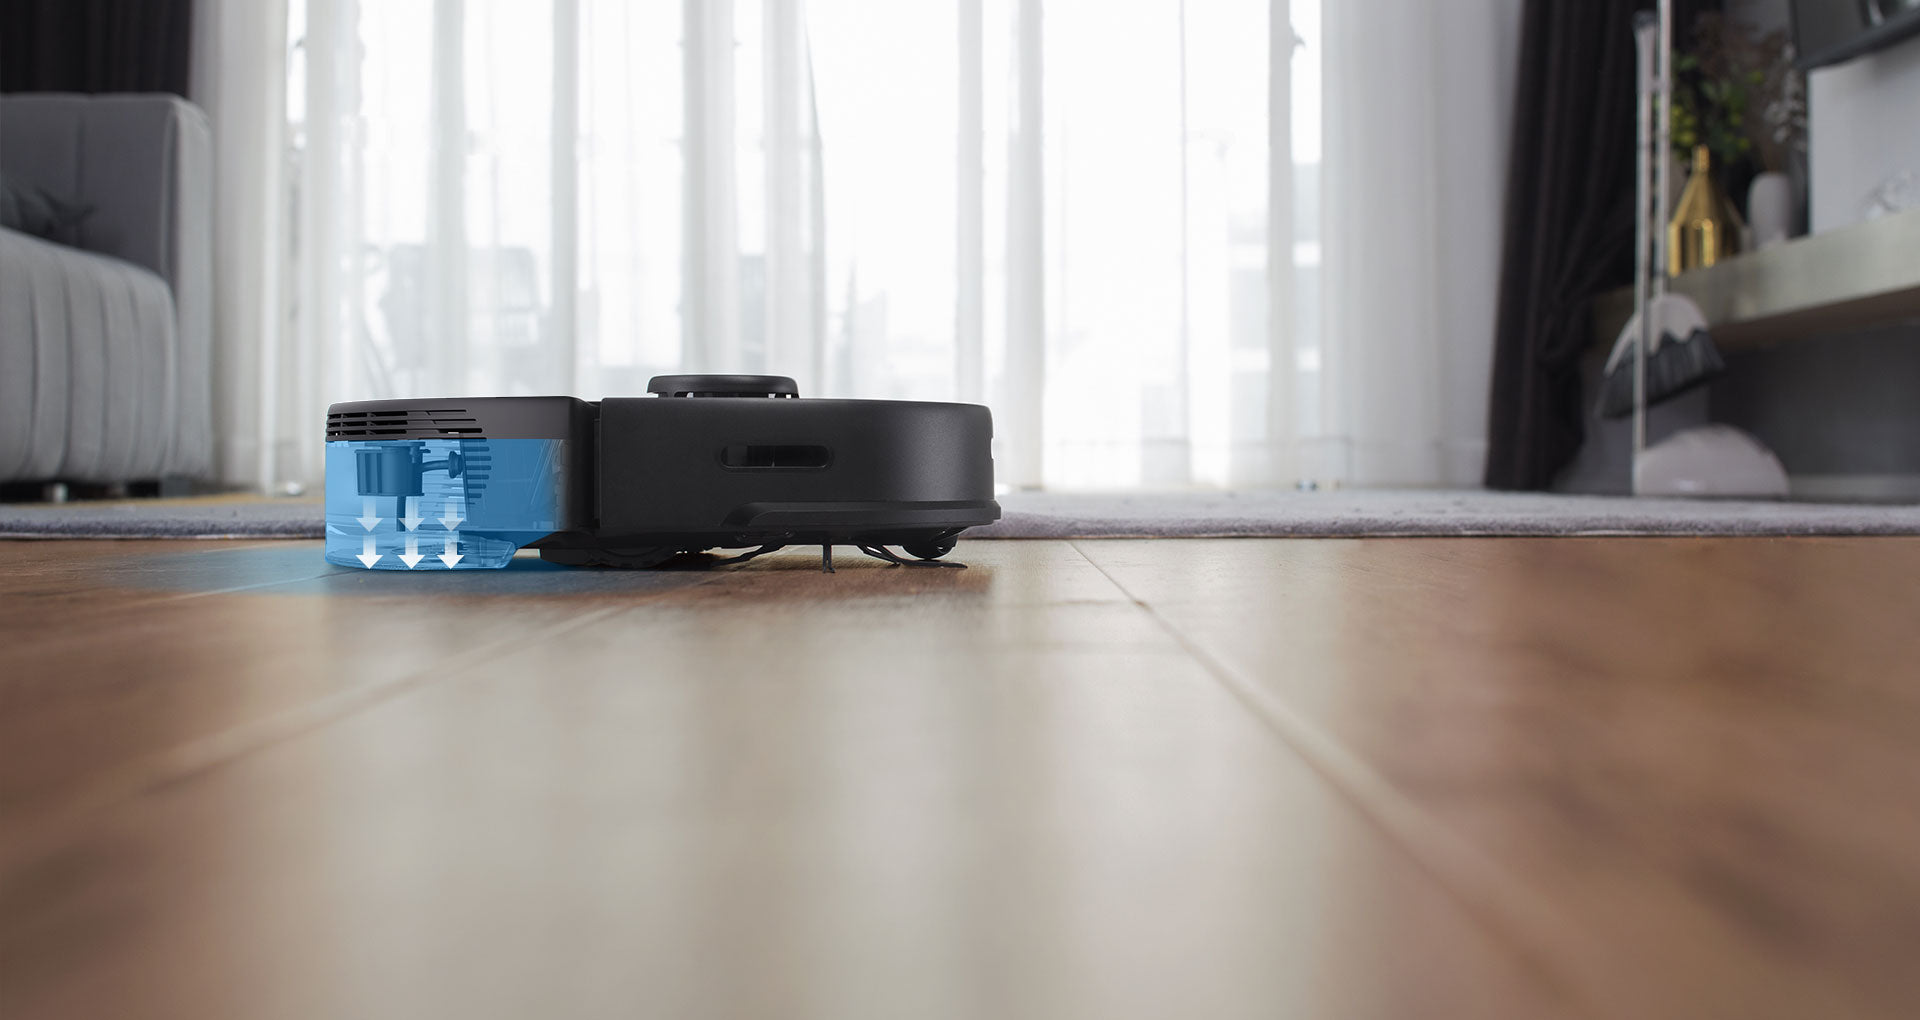 Roborock S5 Max even cleaning